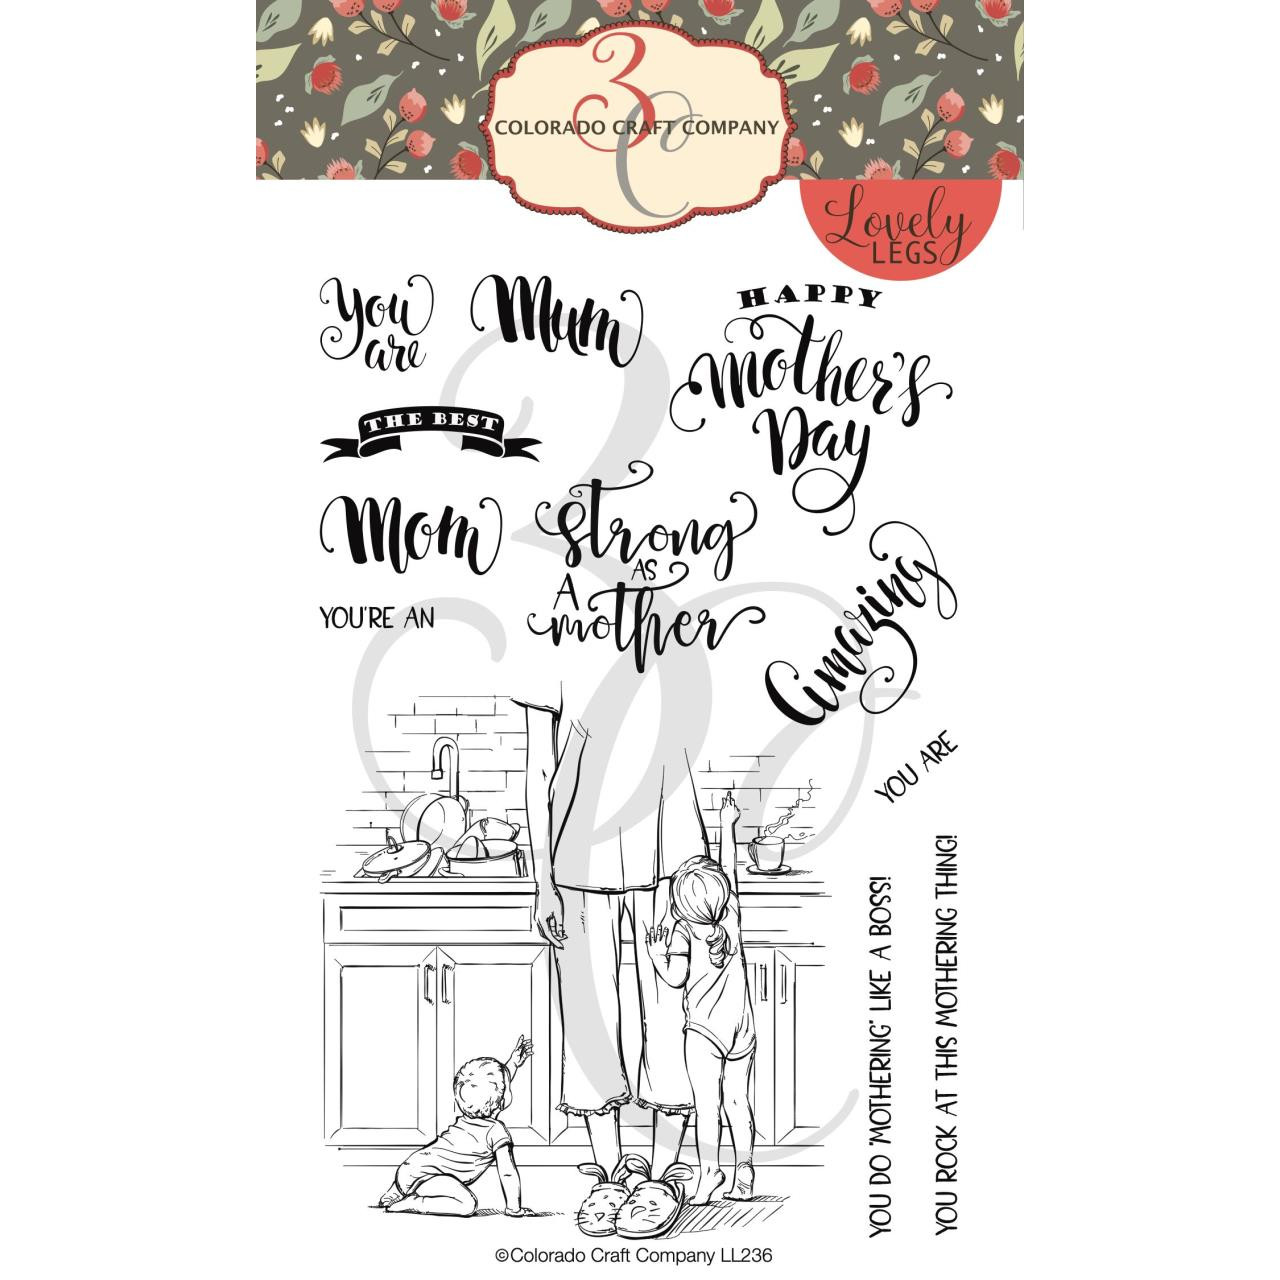 Tired as a Mother, Colorado Craft Company Clear Stamps - 8.57287E+115